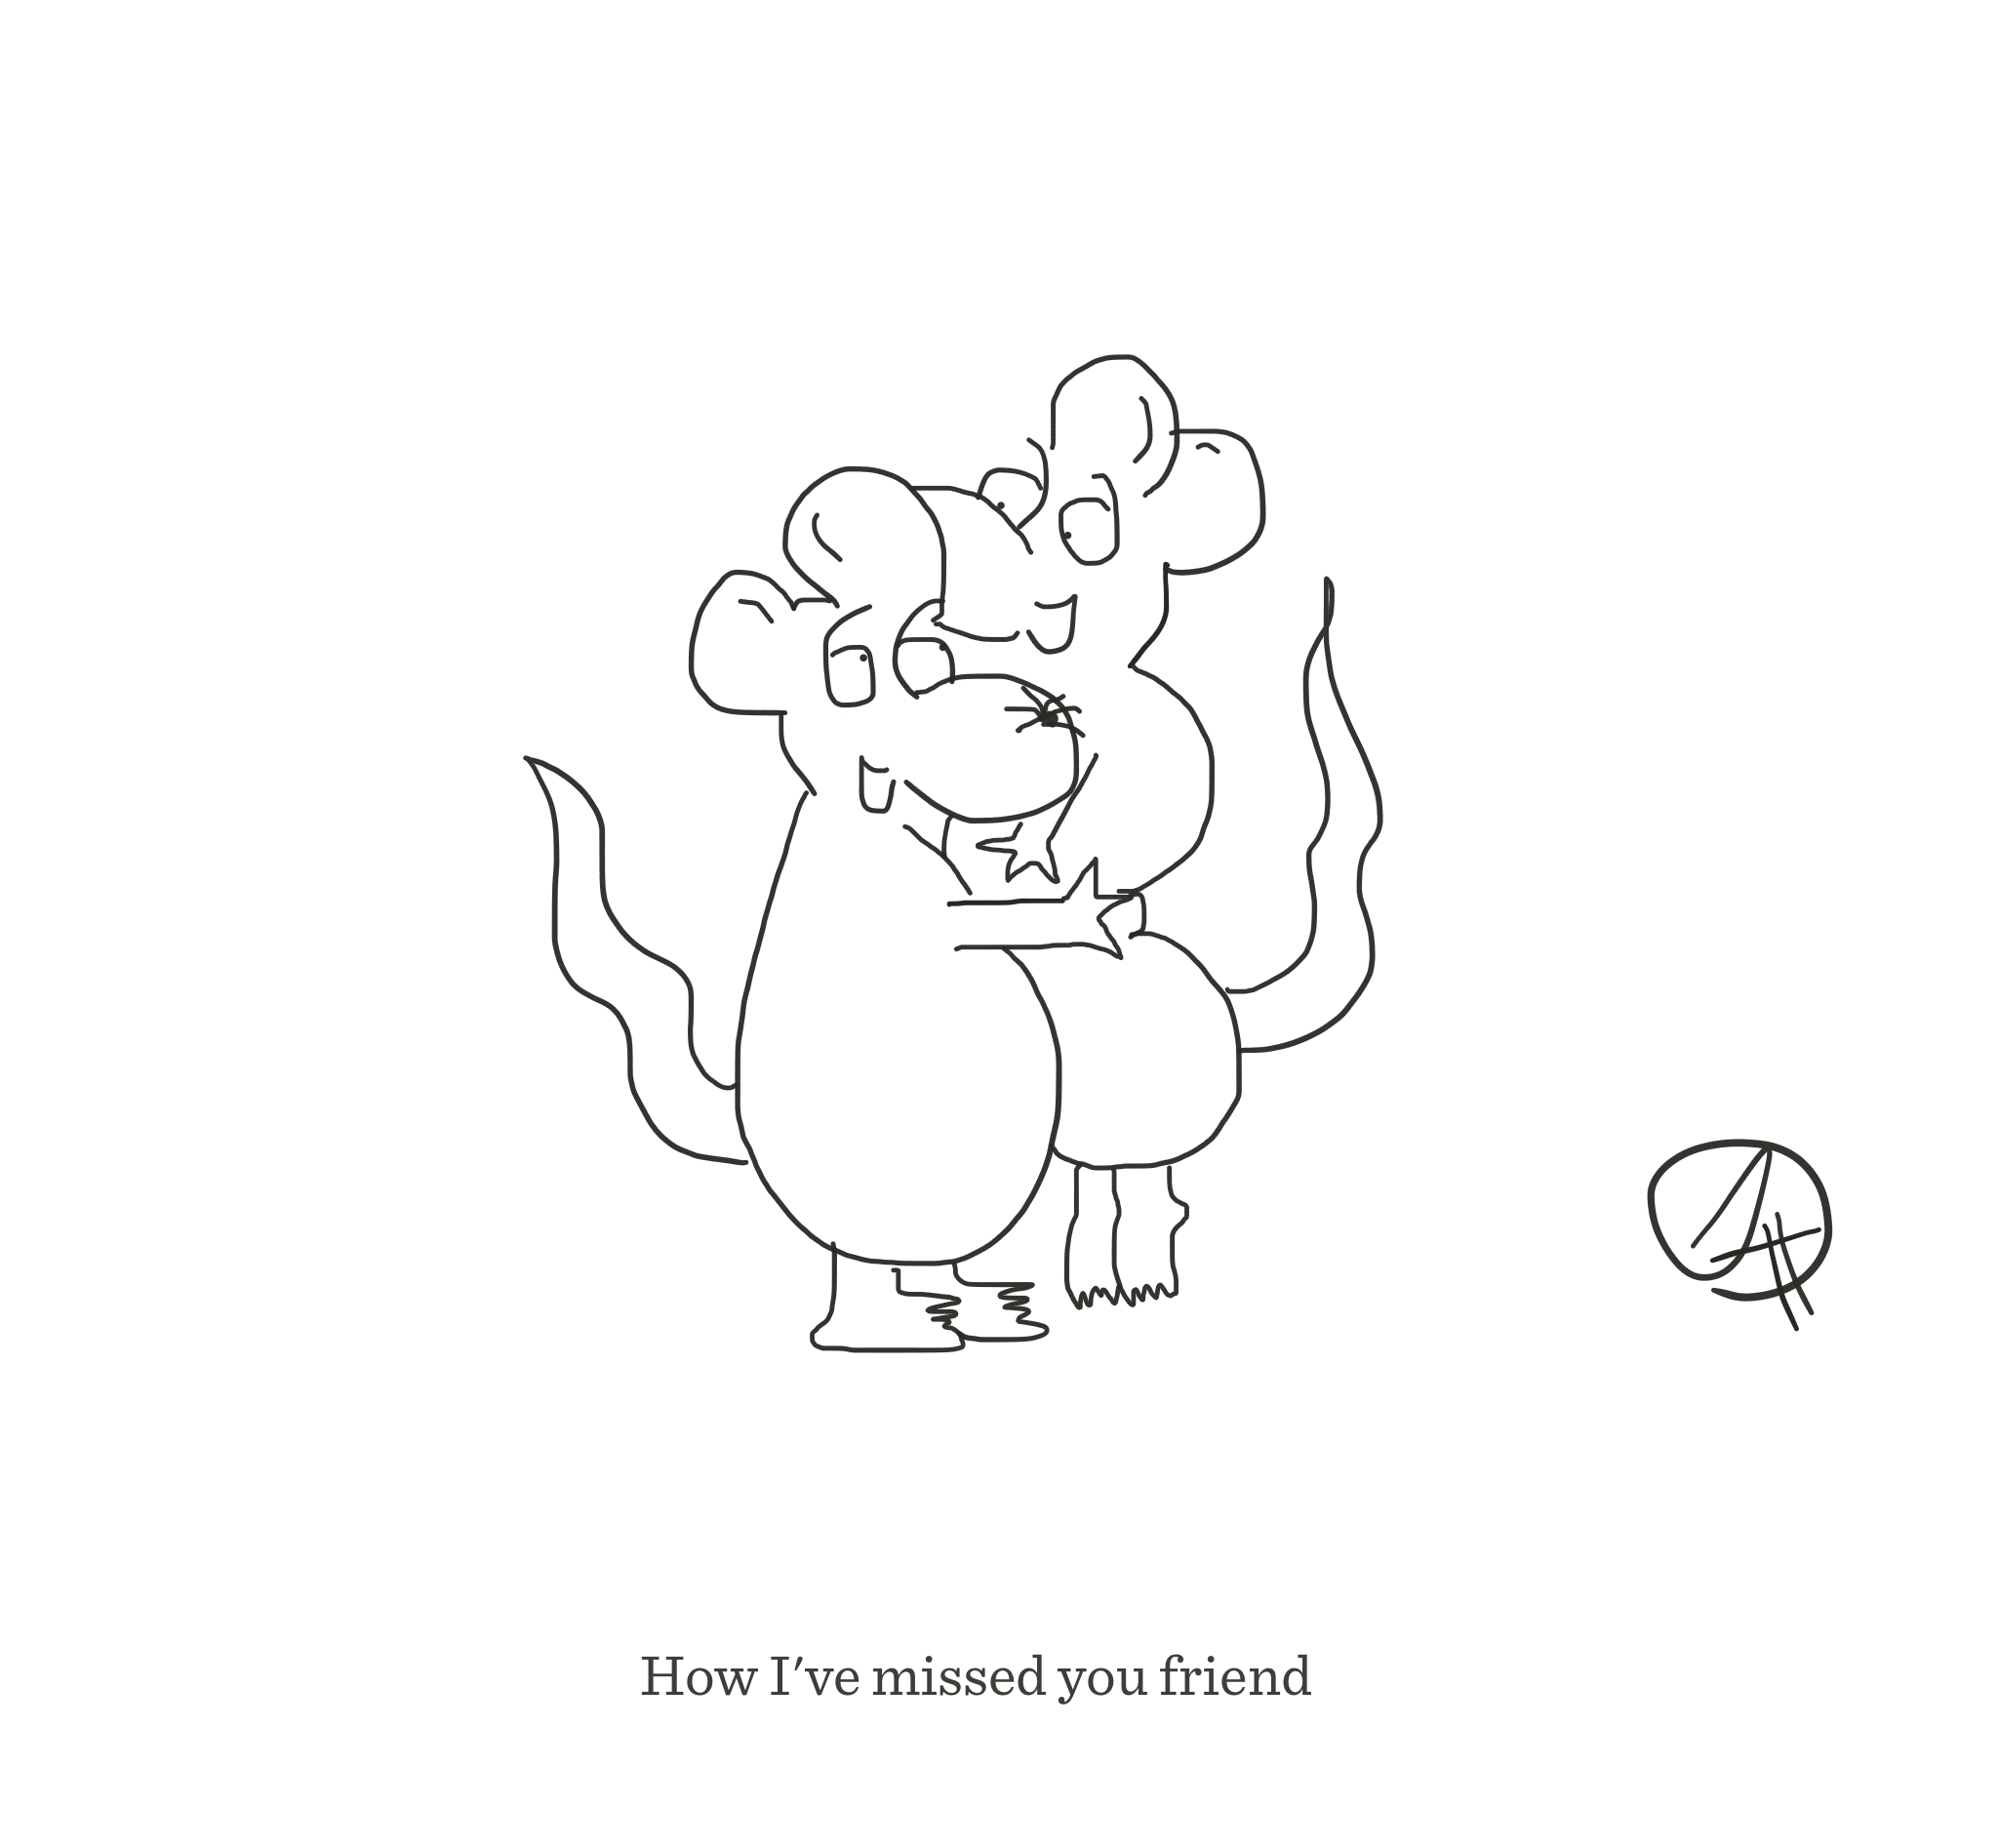 I've missed friend, The Happy Rat cartoon